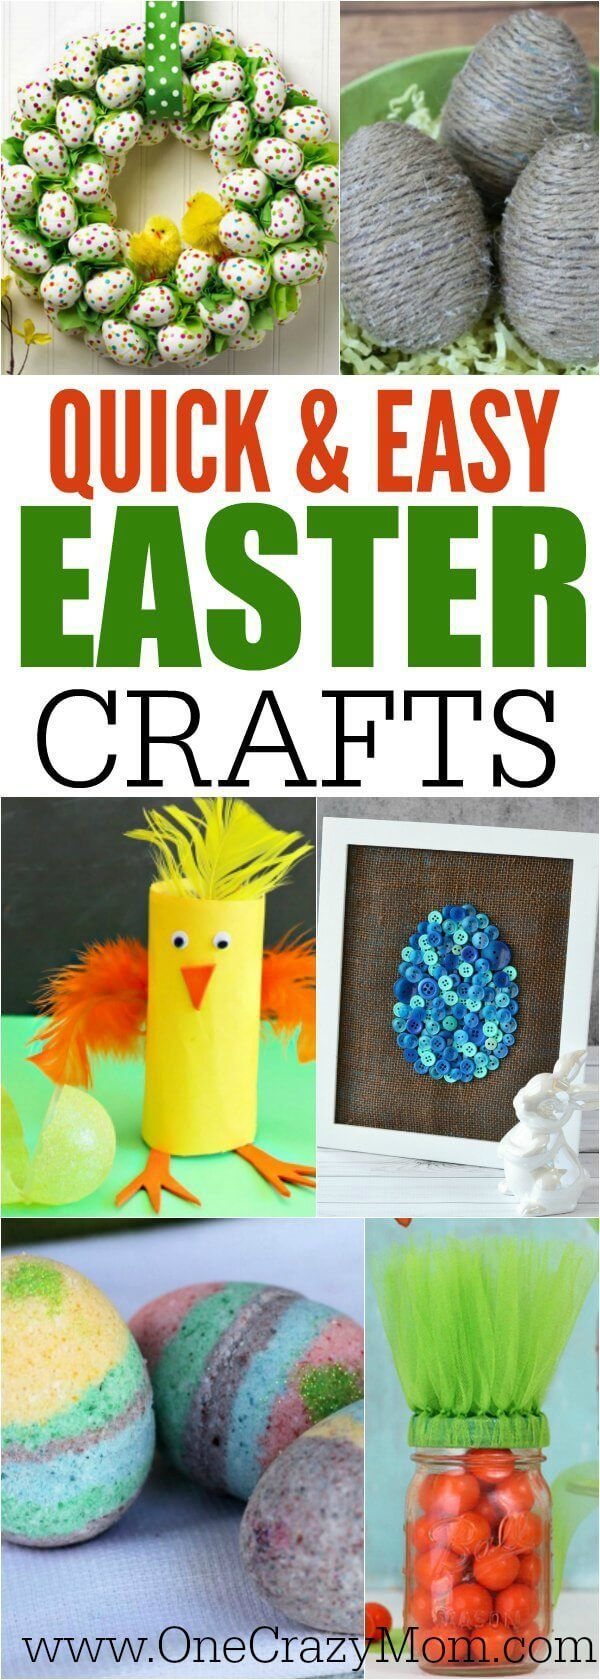 Quick and Easy Easter Crafts - Over 21 Ideas You can Make!